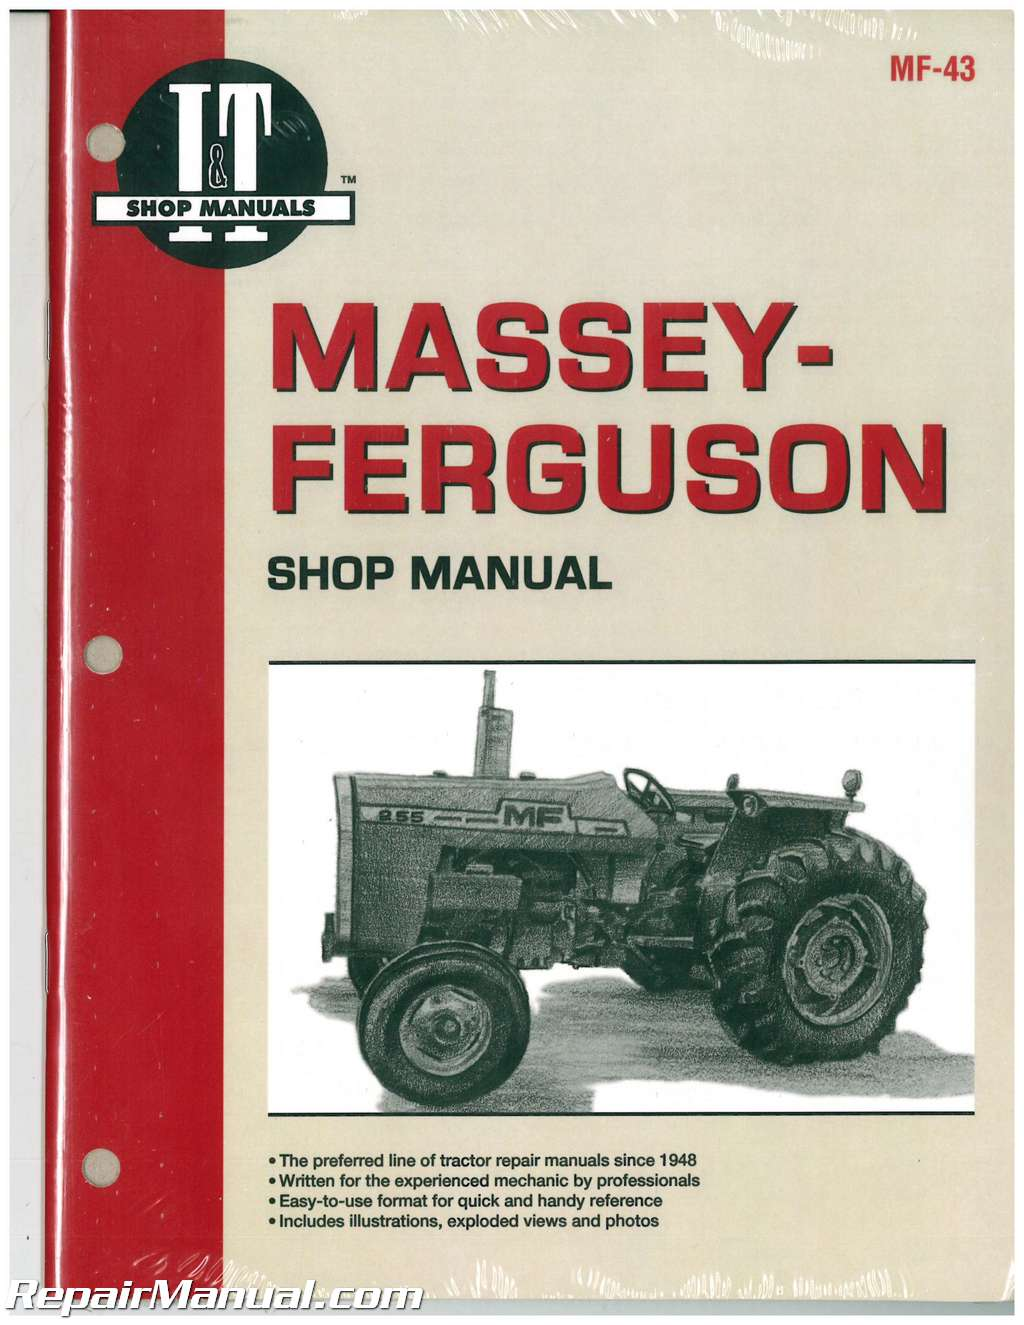 massey ferguson mf255 mf265 mf270 mf275 mf290 tractor manual rh repairmanual com massey ferguson 165 manual massey ferguson 265 parts manual